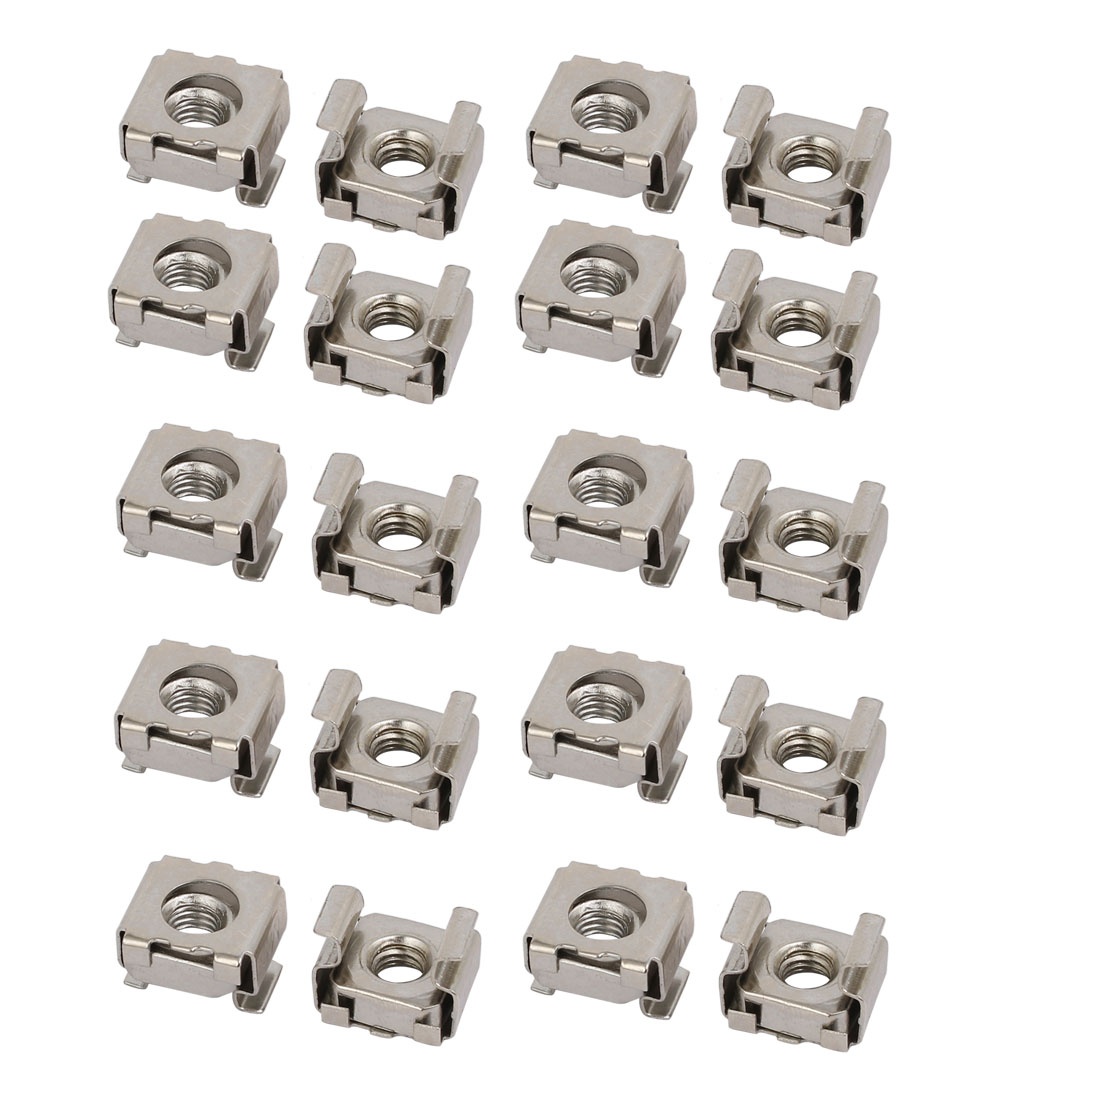 20pcs M5 65Mn Steel Captive Cage Nut Silver Tone for Server Shelf Cabinet